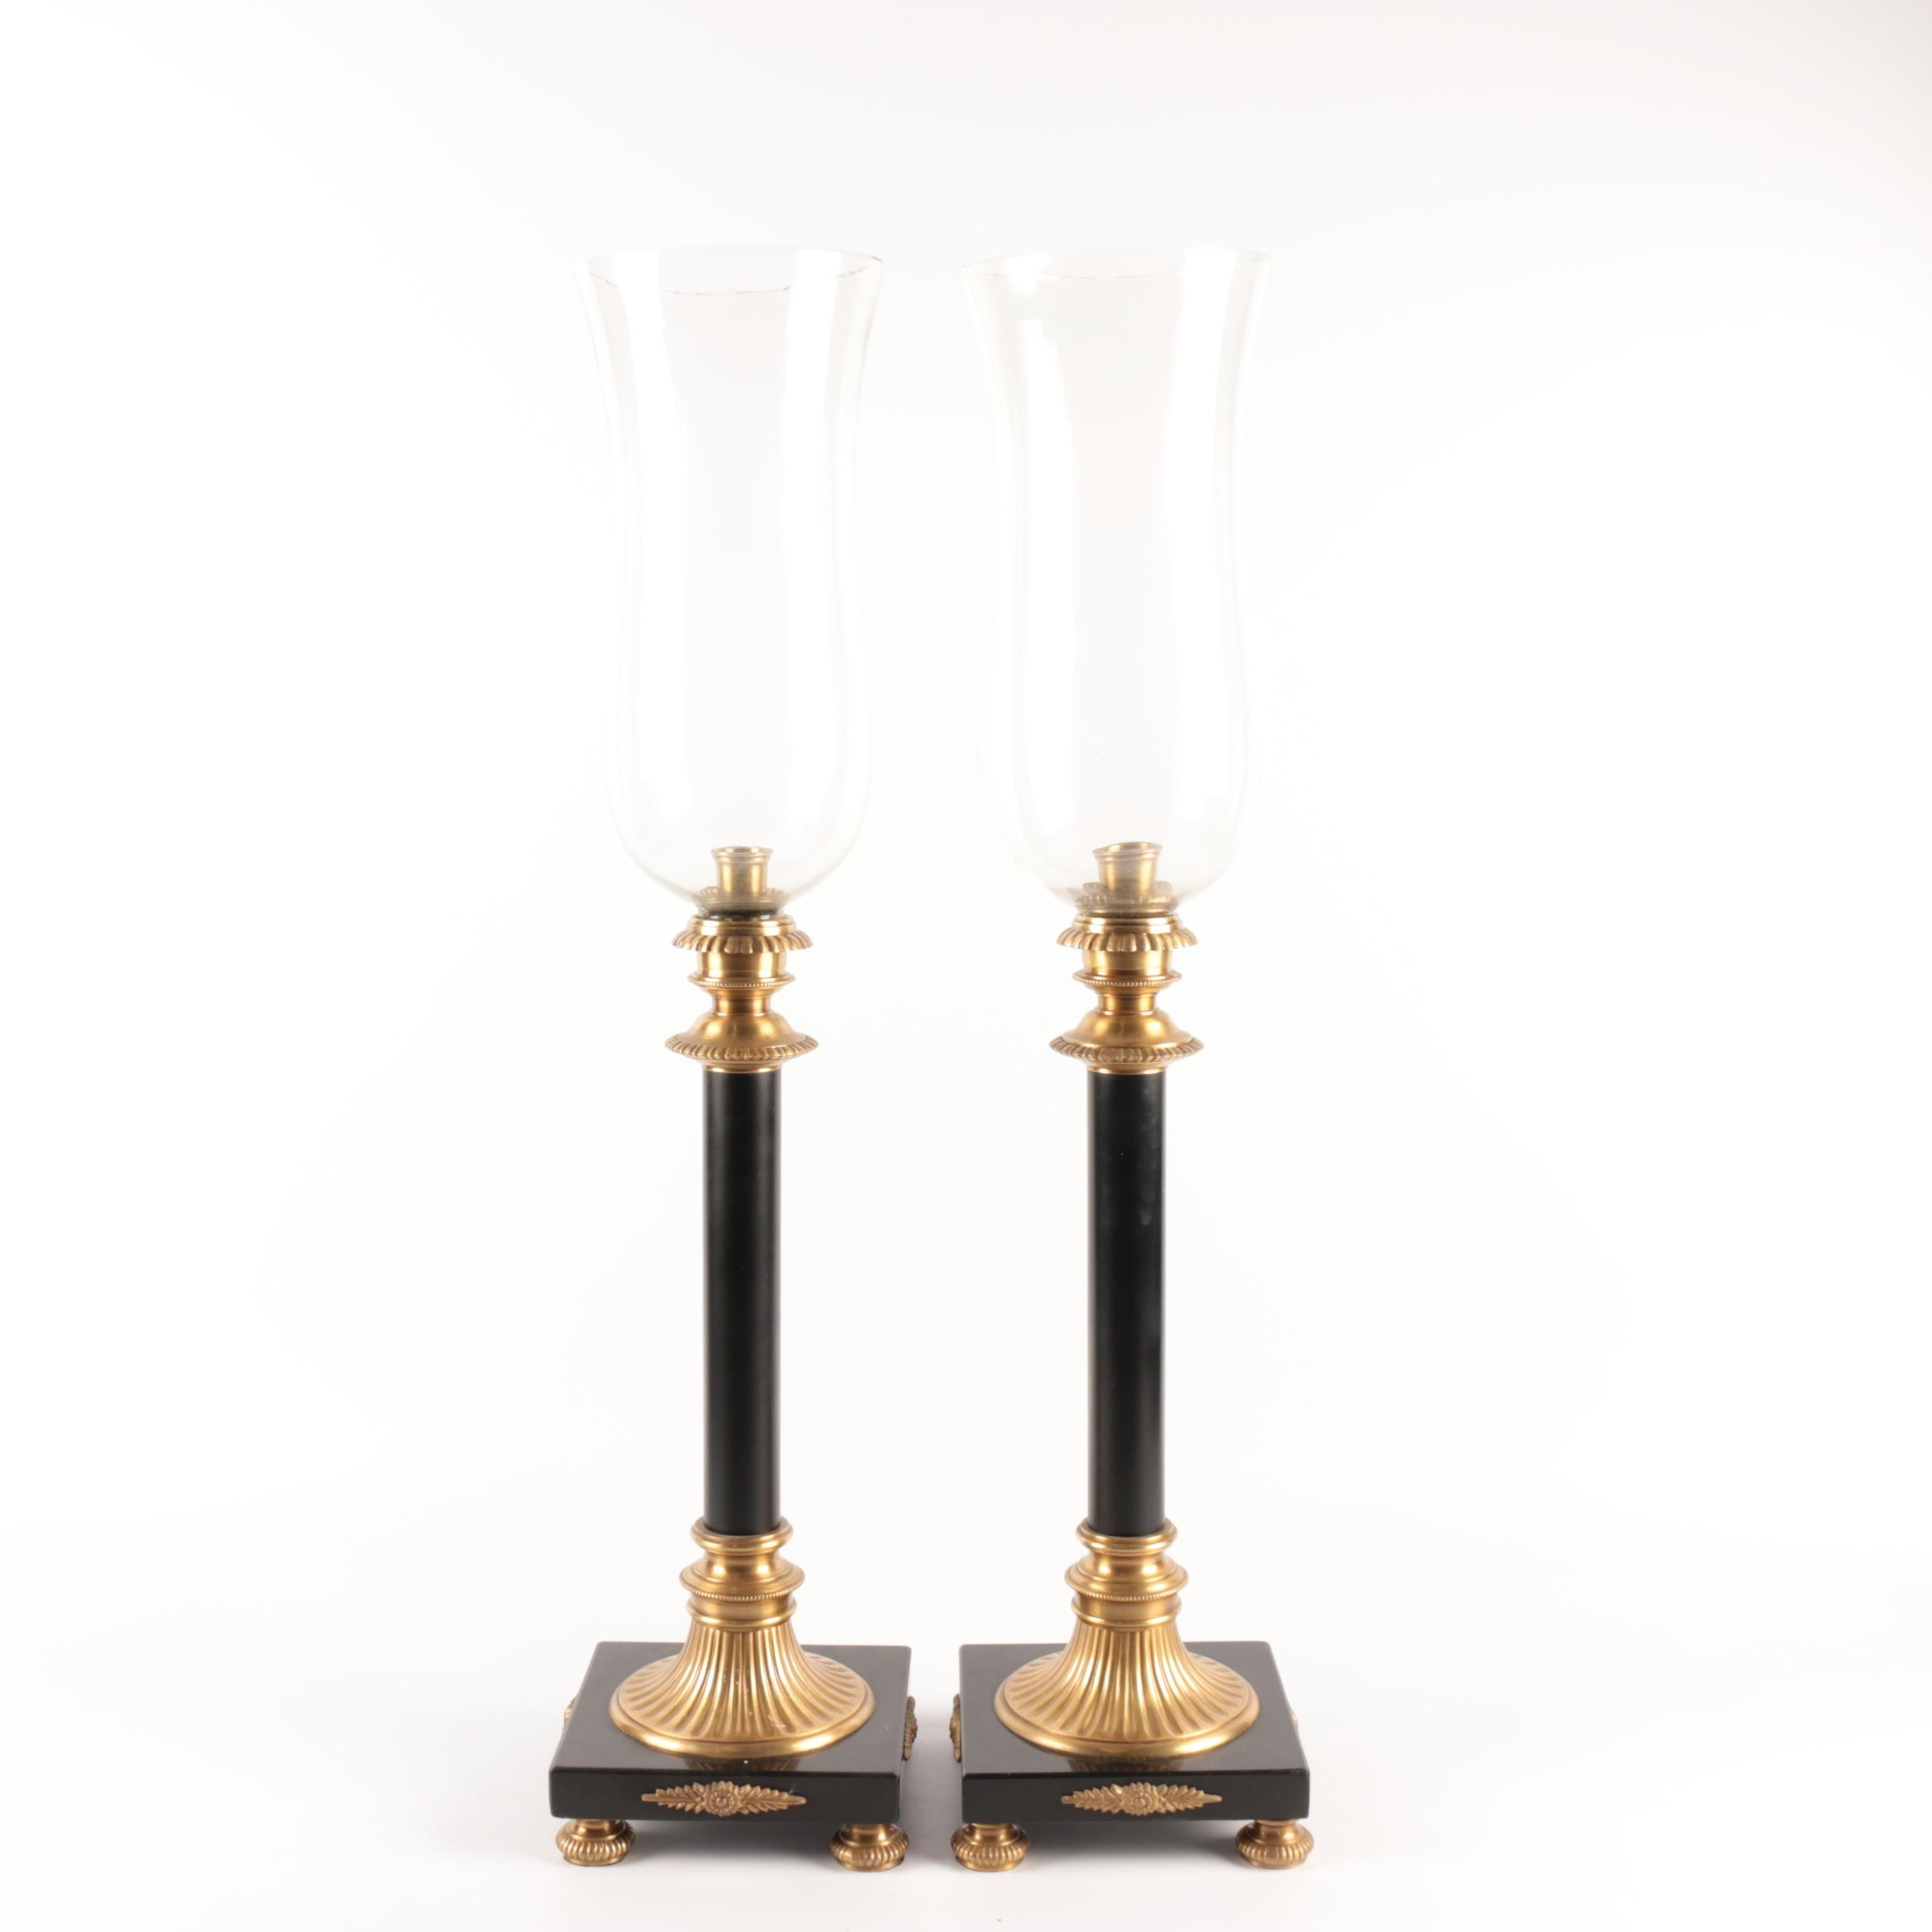 Neoclassical Style Metal and Stone Candlesticks with Glass Hurricane Shades